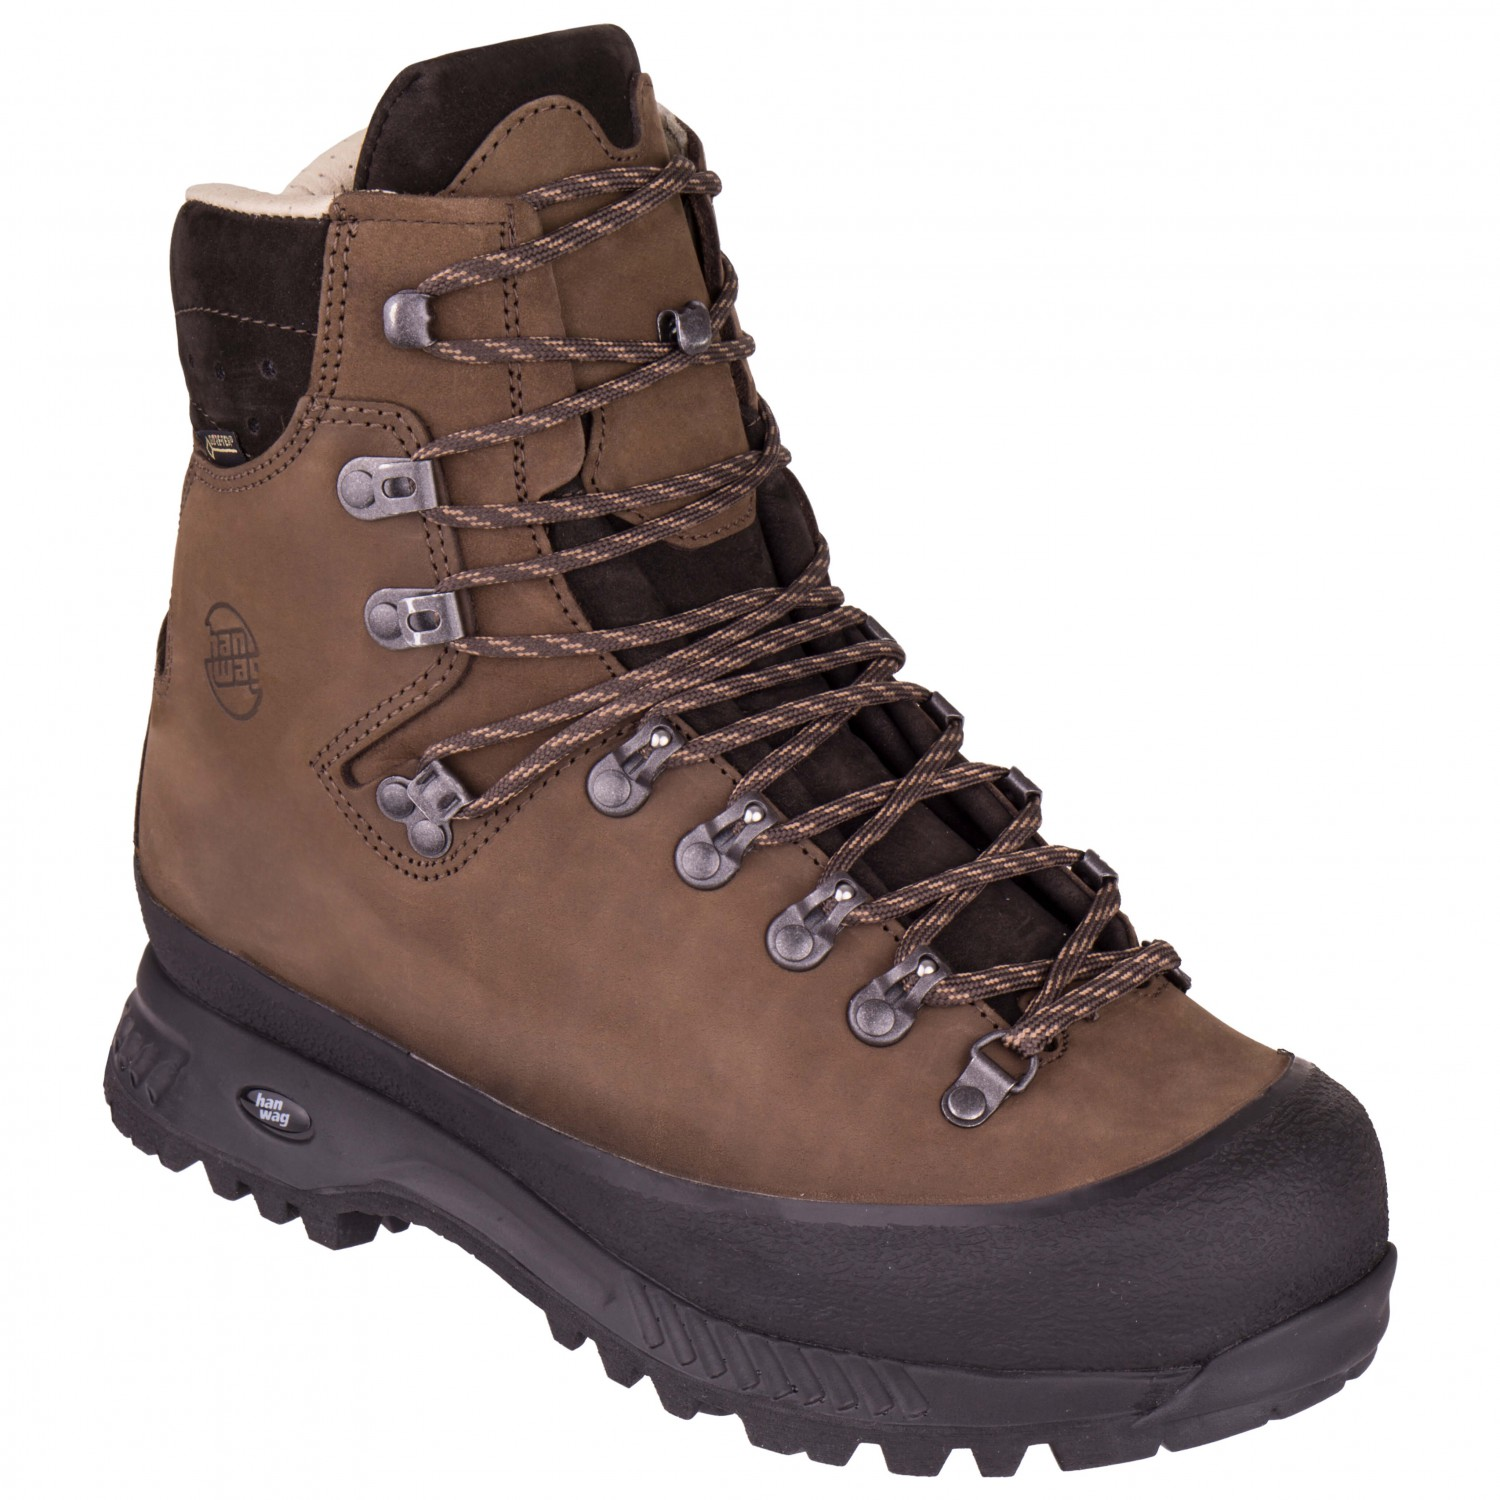 Hanwag Alaska Wide Gtx Mountaineering Boots Men S Free